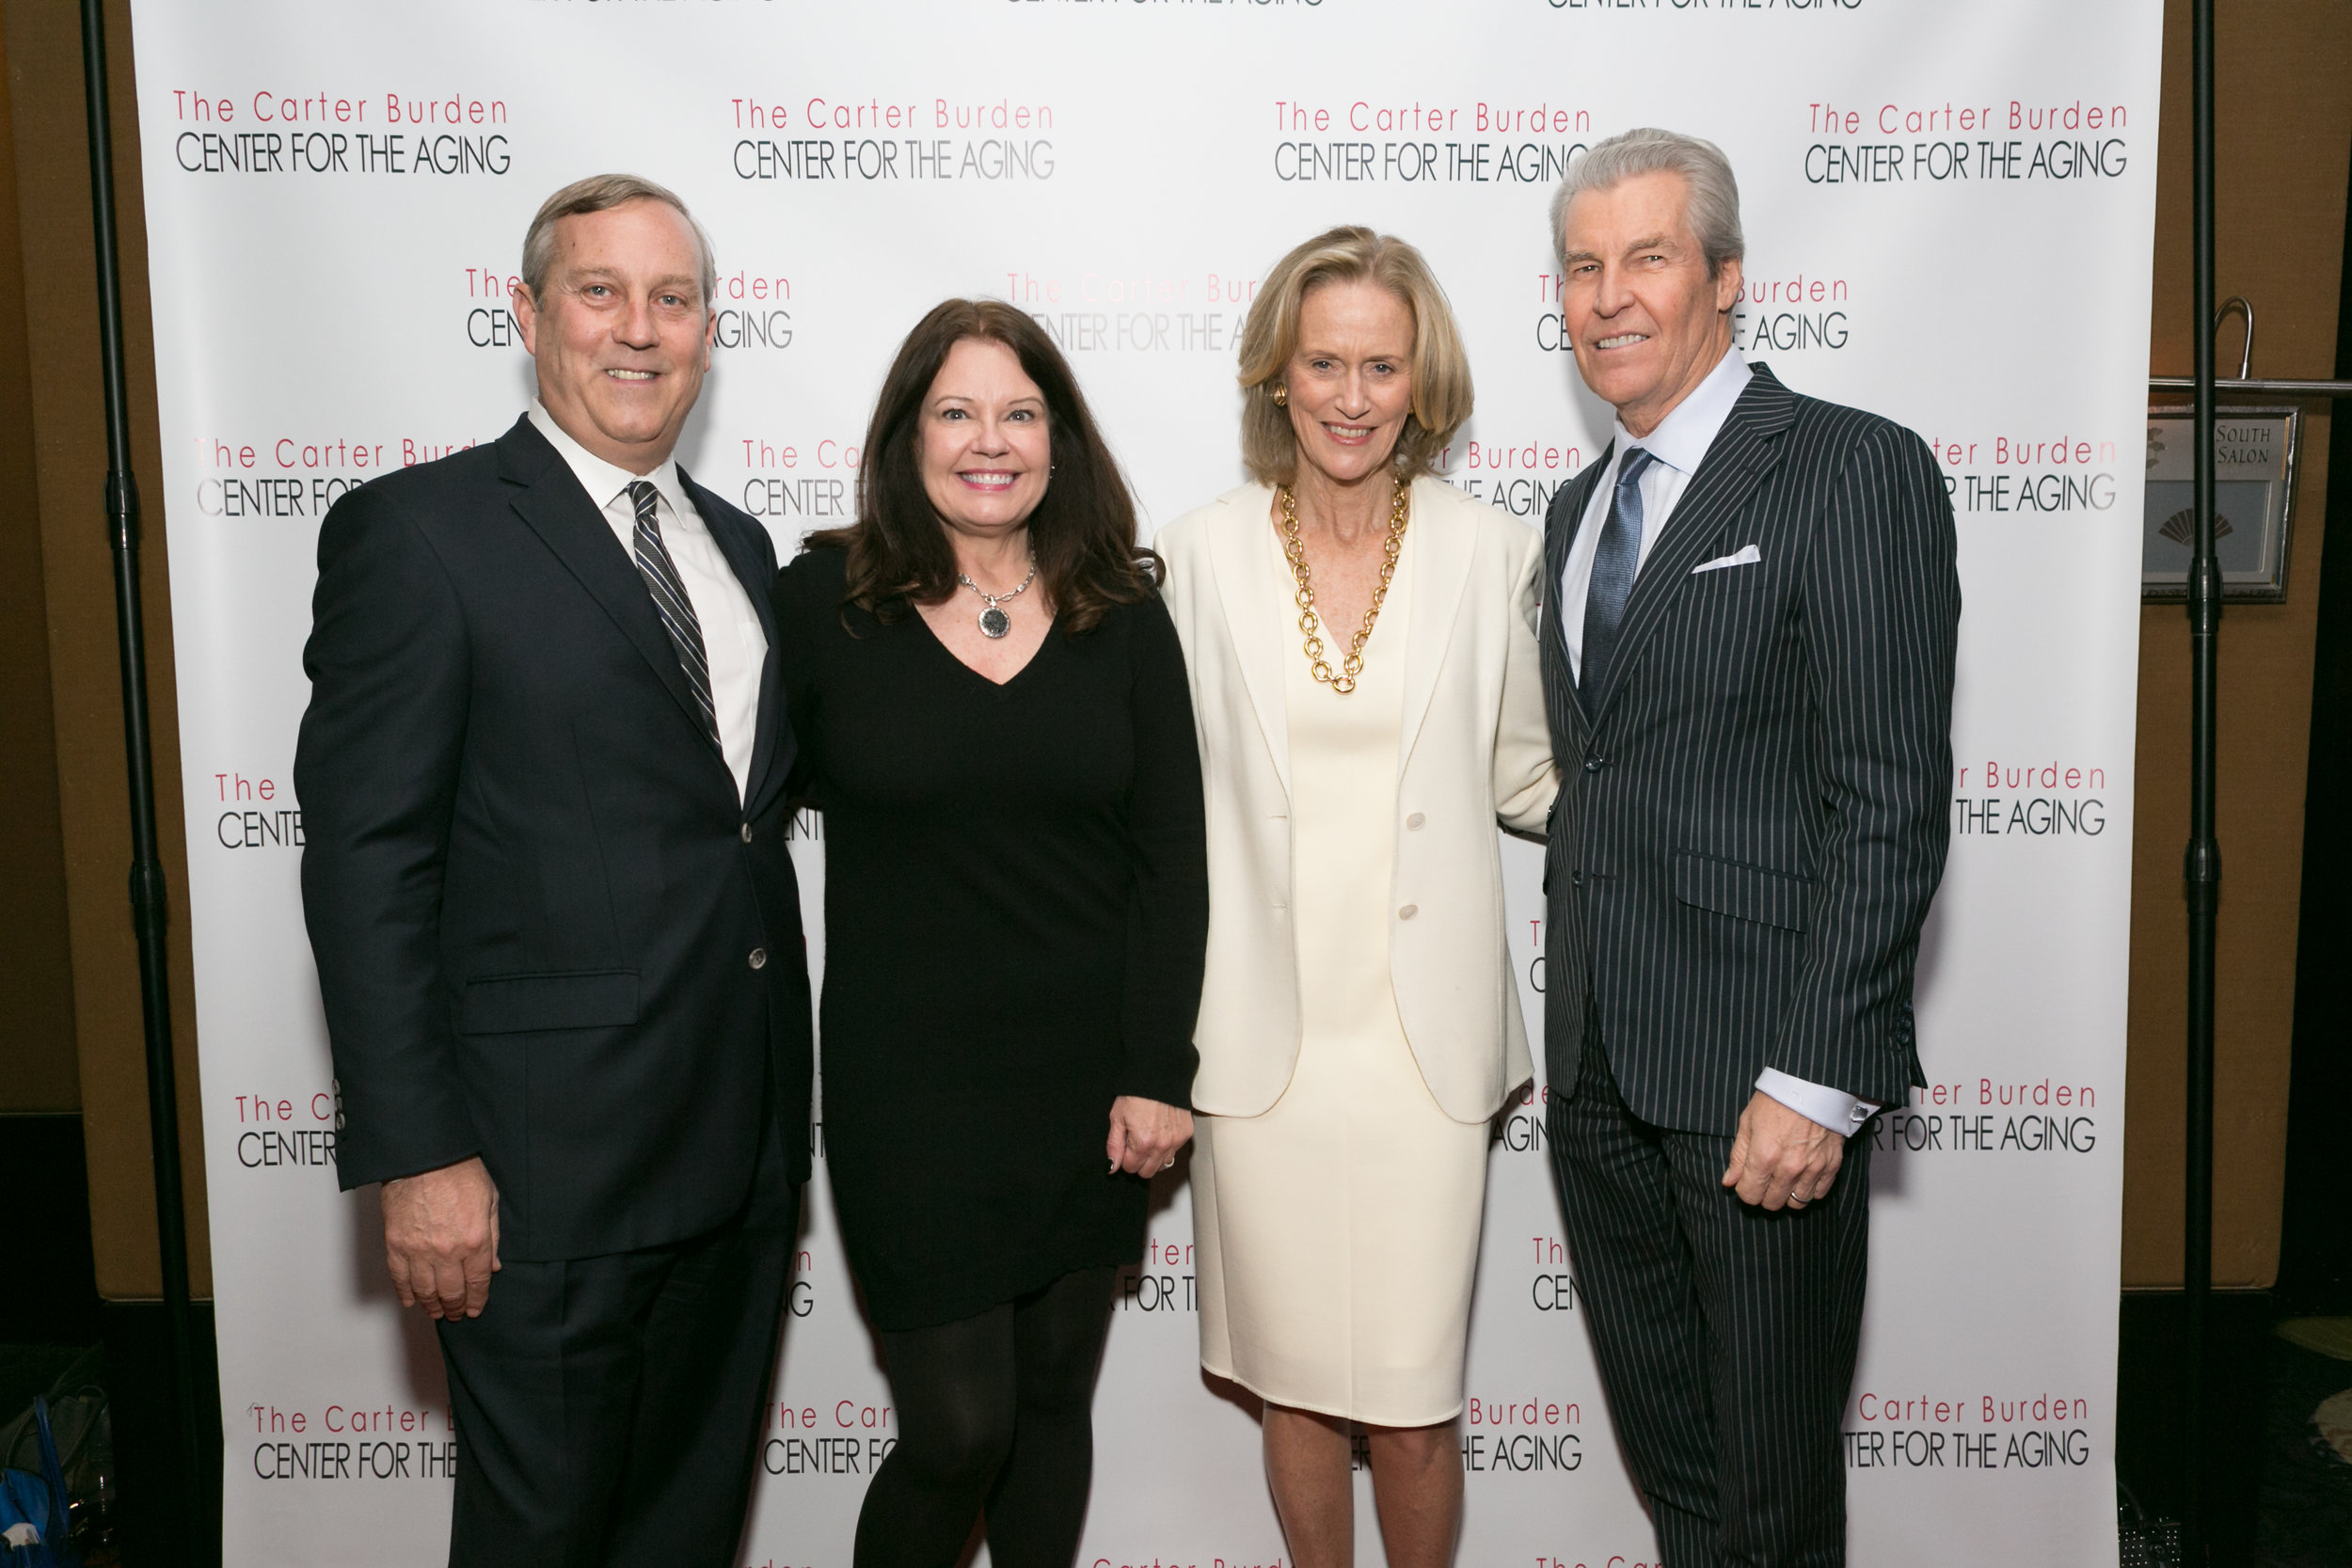 Peter Sachse   , Chief Growth Officer, Macy's, 2016 Business Leadership Honoree and his wife  Jini Sachse;Susan L. Burden , Board Member, Carter Burden Network; Terry J. Lundgren , CEO, Macy's Inc.